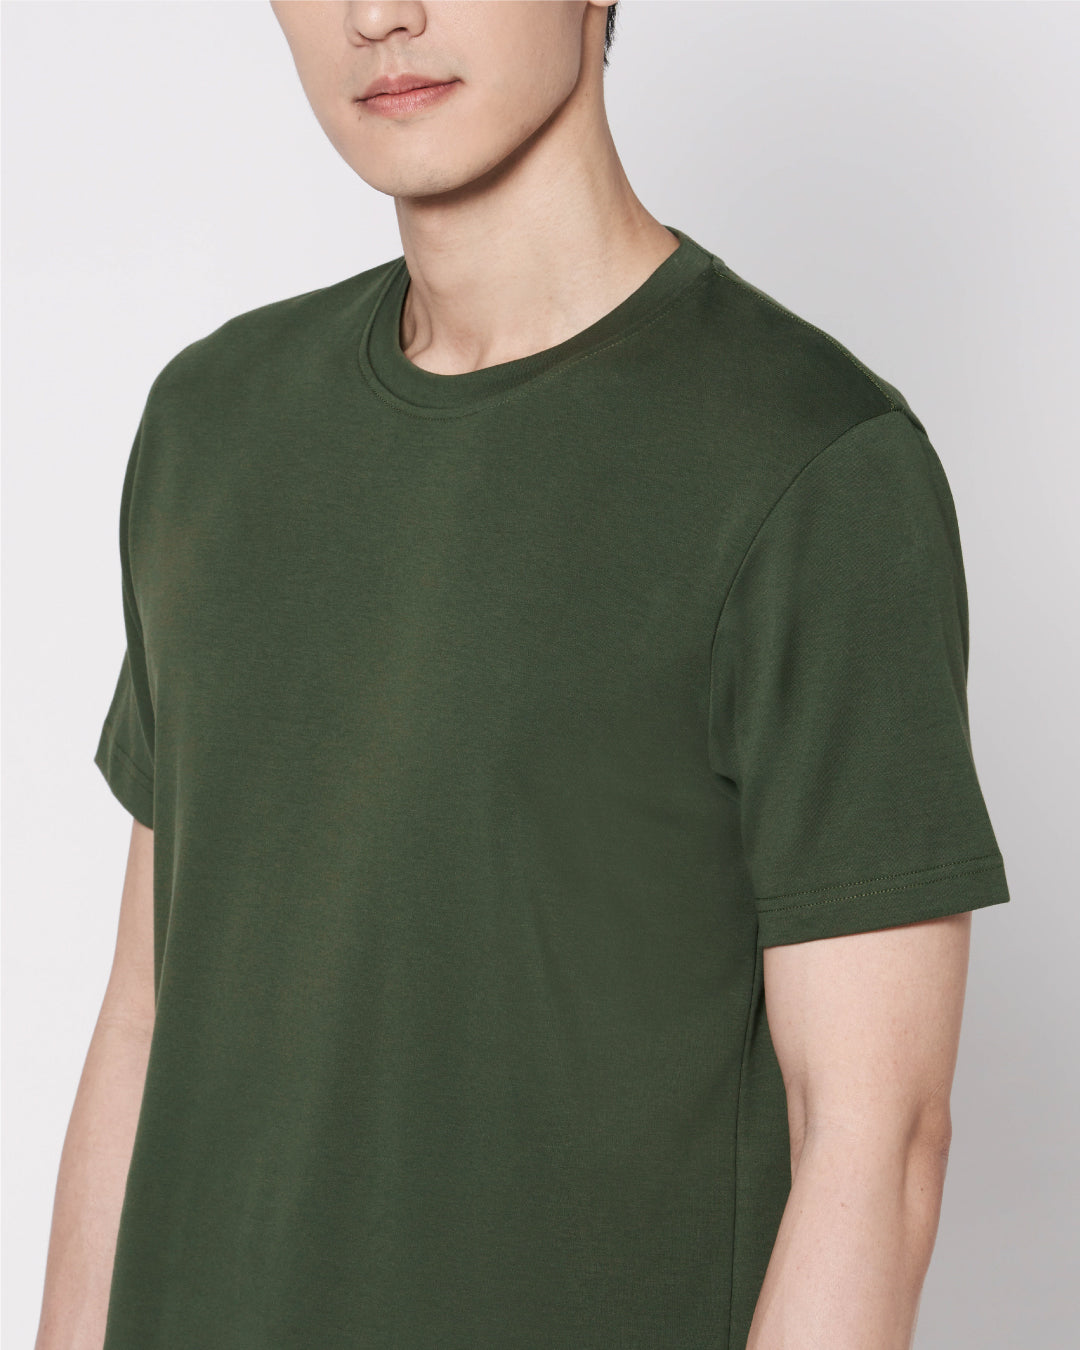 Men Premium Weight Cotton Crew Neck Tee